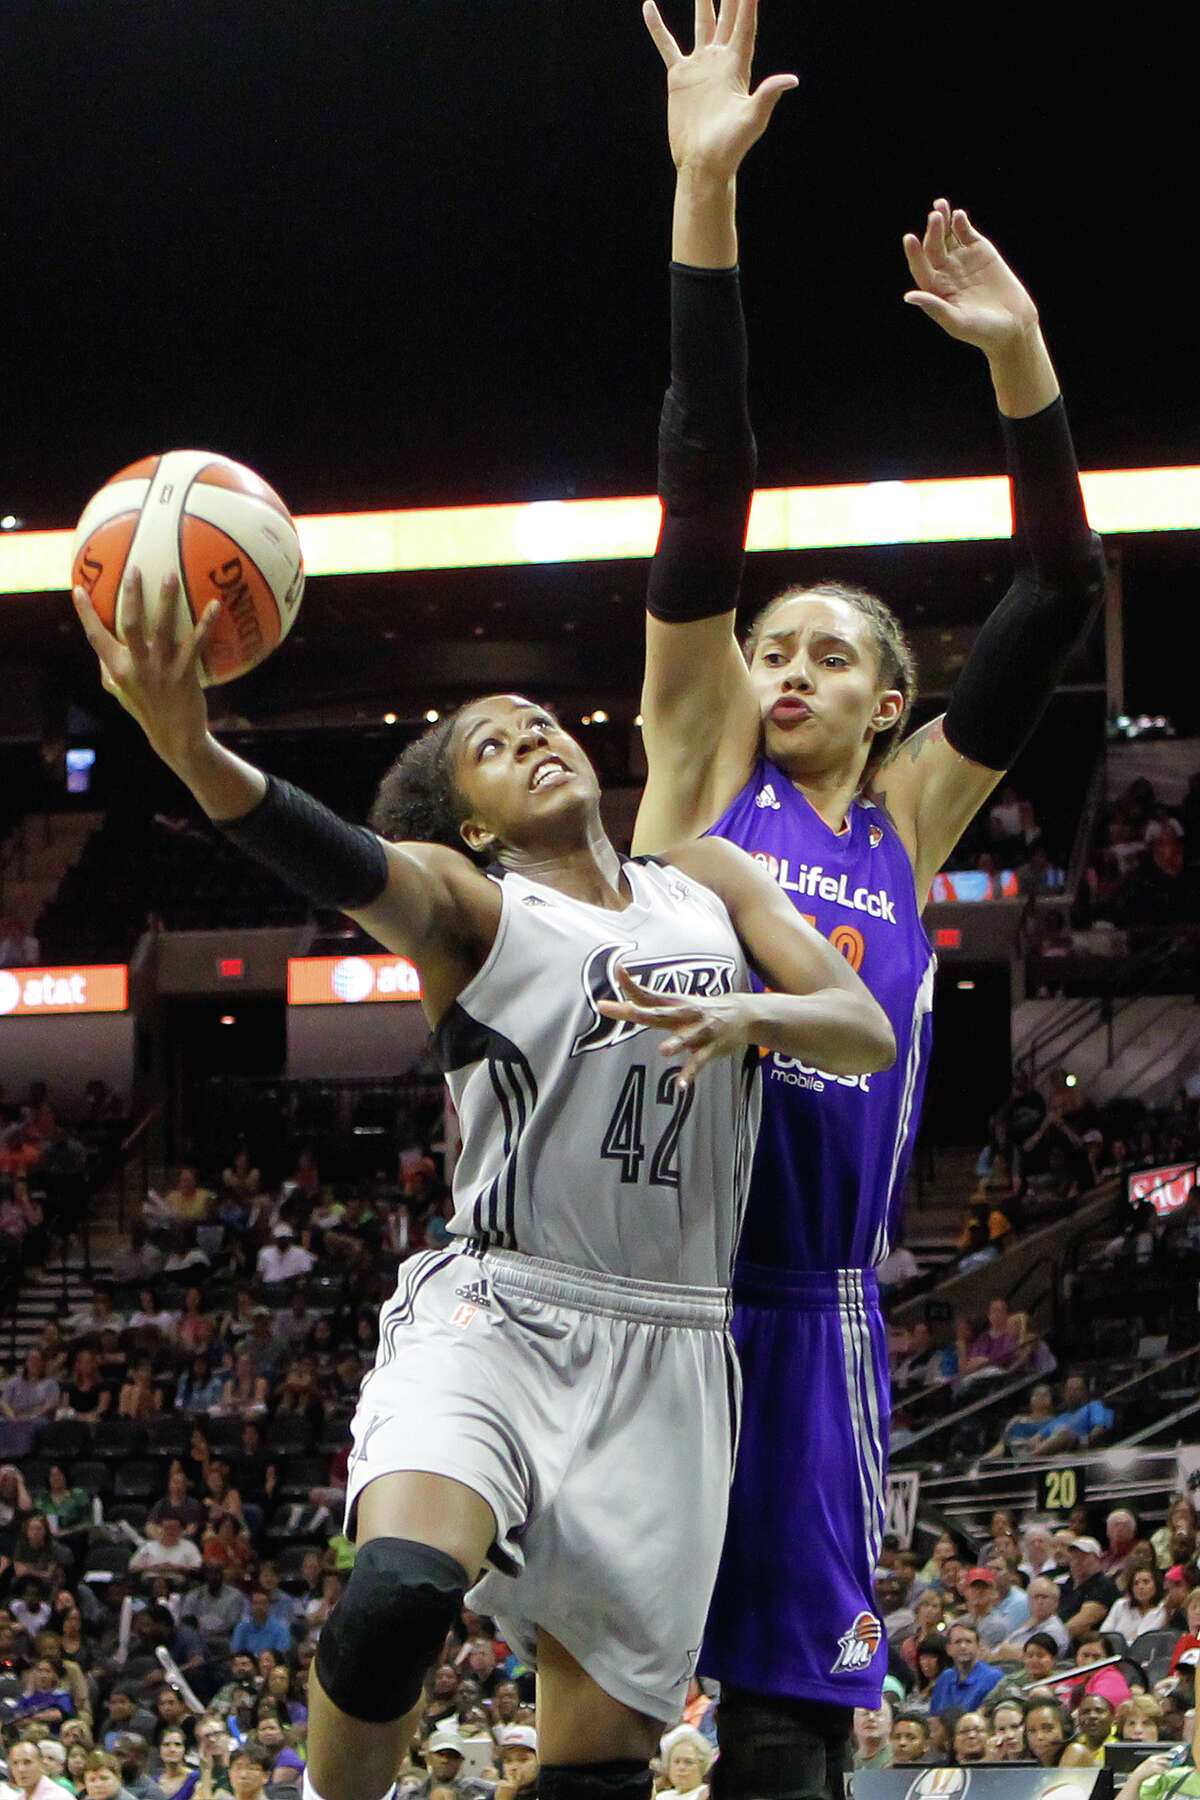 Phoenix's Brittney Griner (right) goes up to block a shot by Shenise Johnson during the second half of the Silver Stars game with the Phoenix Mercury at the AT&T Center on Tuesday, June 25, 2013. The game was former Baylor standout Brittney Griner's first trip to play in her home state. The Mercury won the game 83-77. MARVIN PFEIFFER/ mpfeiffer@express-news.net